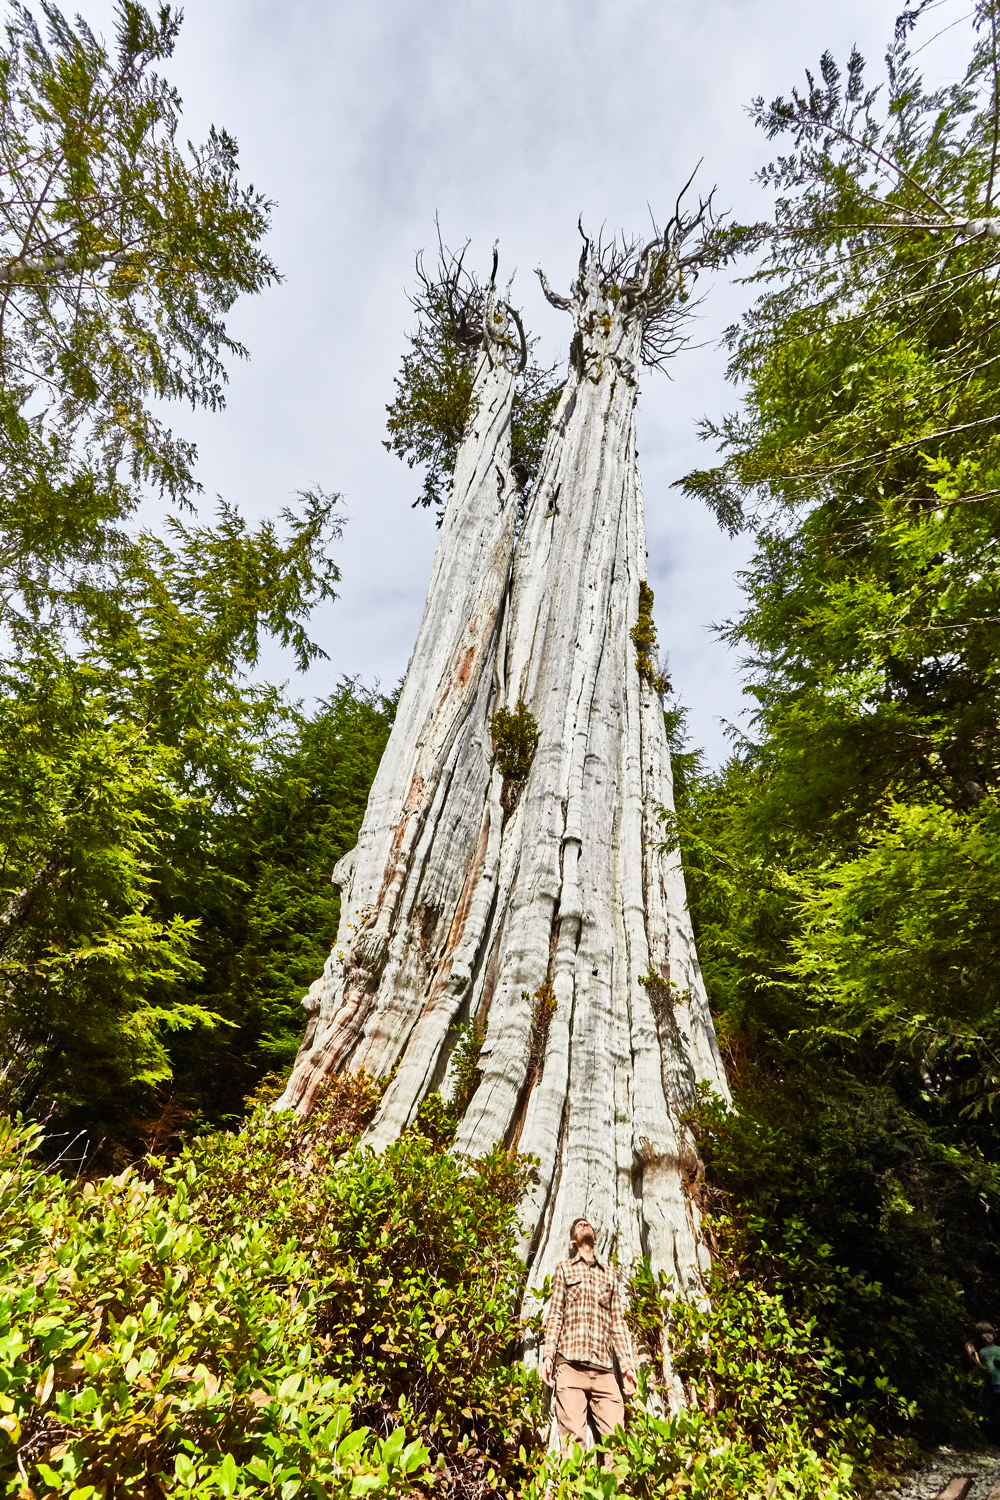 This tree is bigger than it looks in this photo shot with a wide-angle lens.